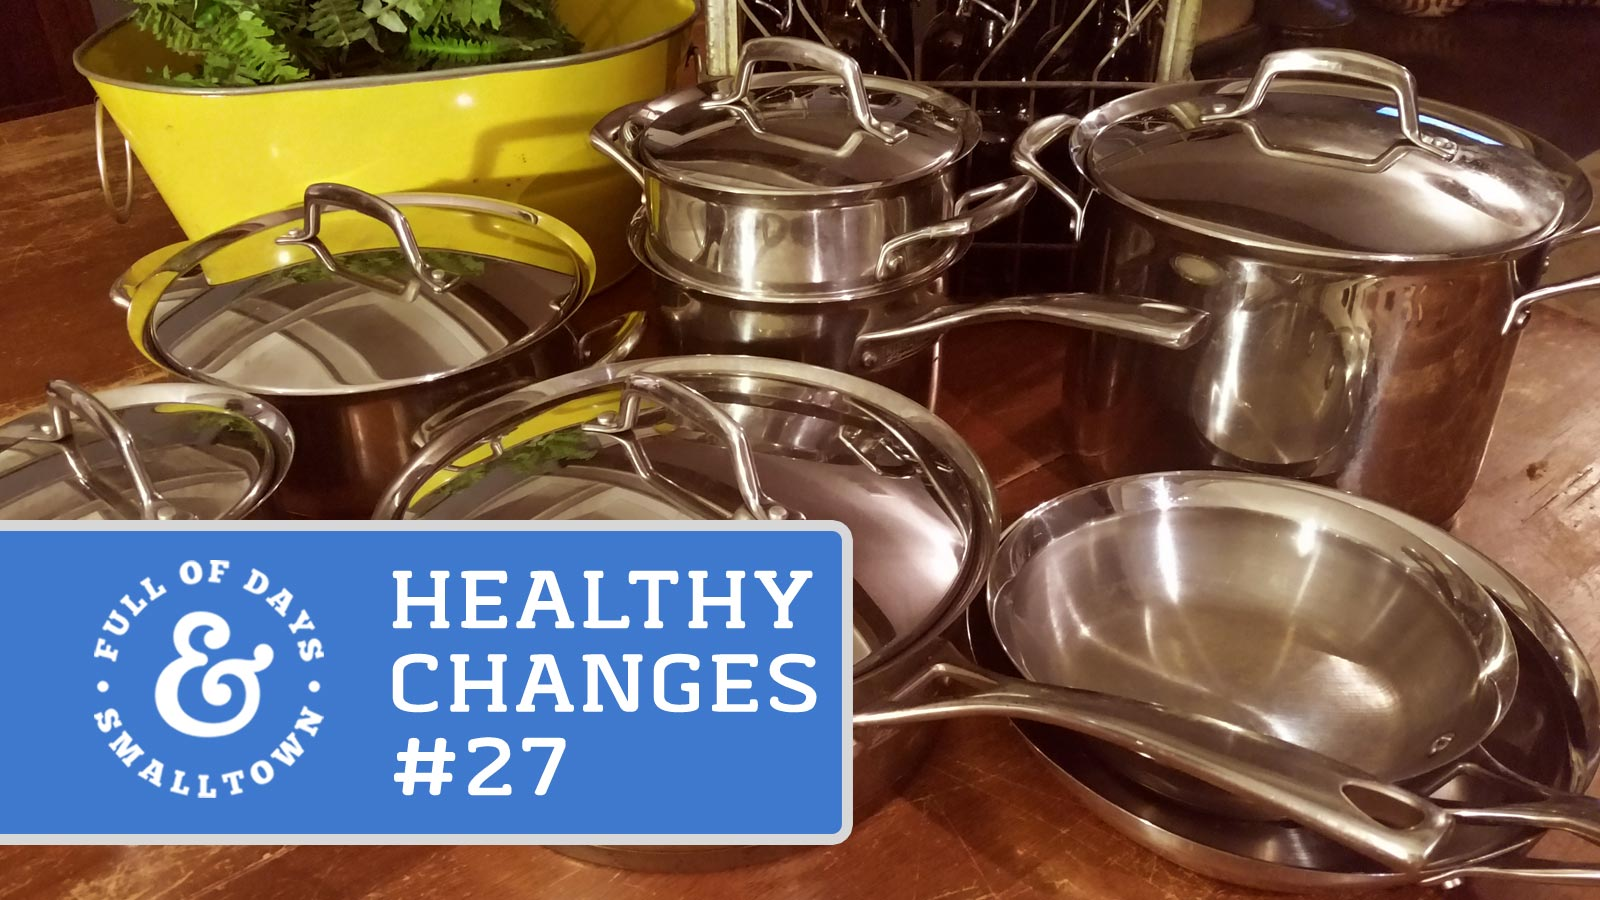 Healthy-Changes-27_Full-of-Days_Kitchen-Equipment_1600-x-900